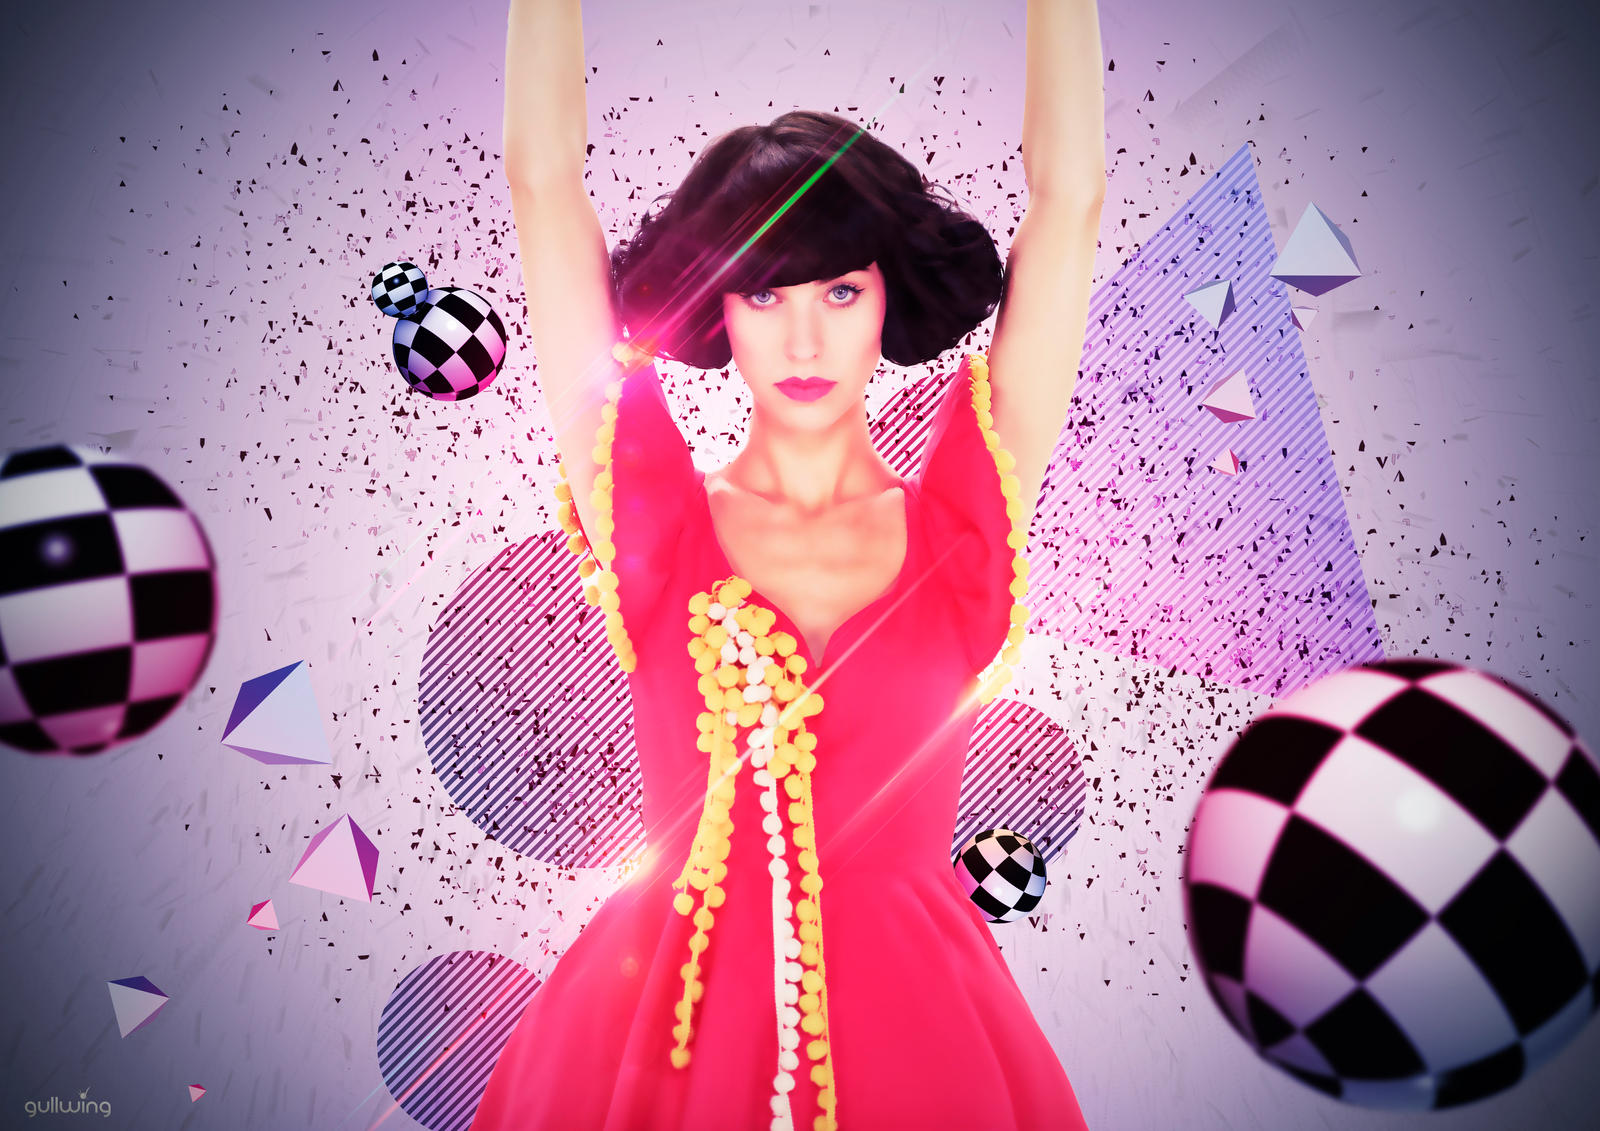 Kimbra Cameo Lover Free Download 39 Cameo Lover 39 Kimbra by